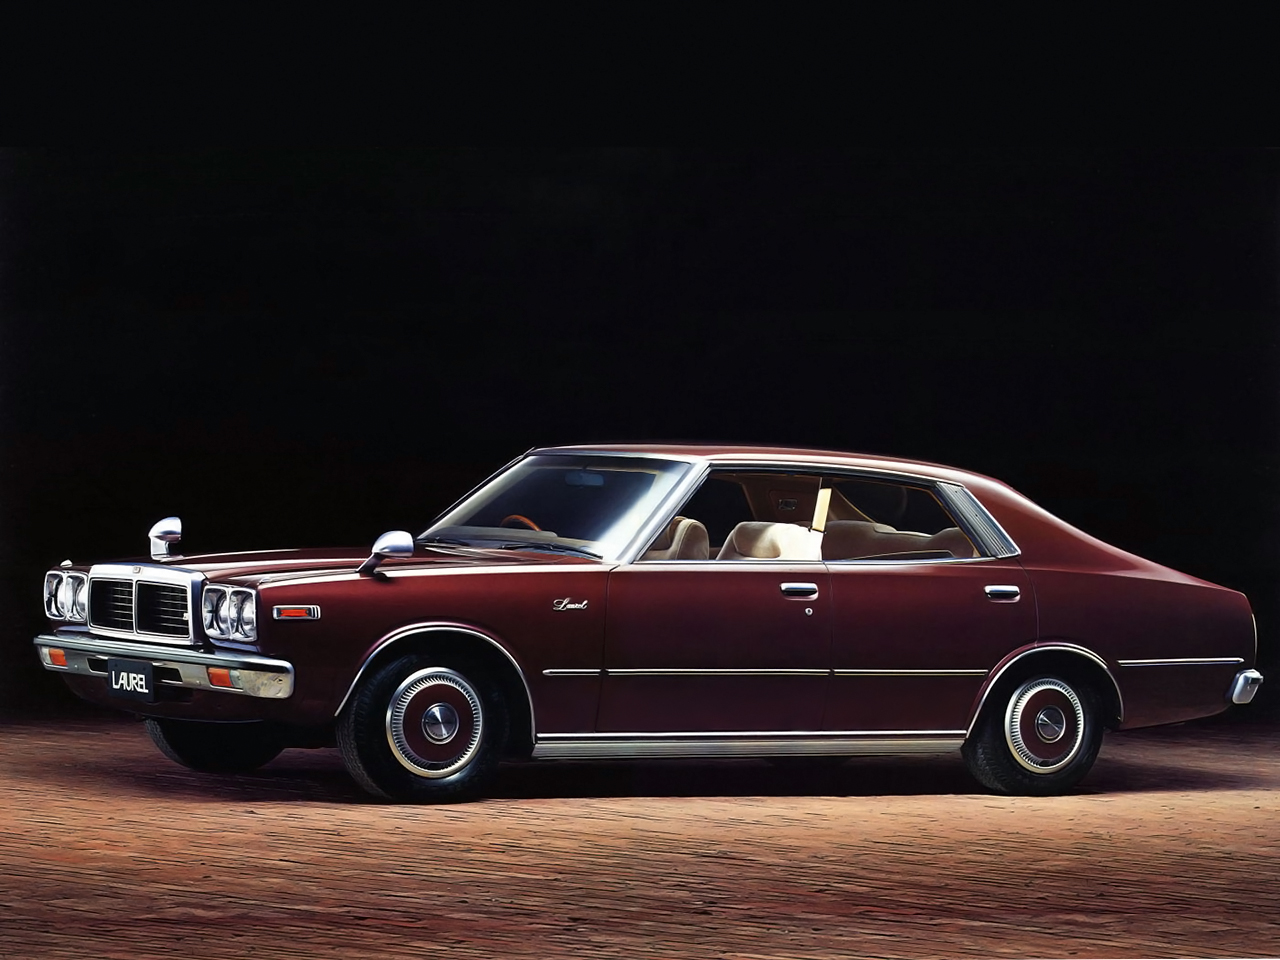 Nissan Laurel photo 81900